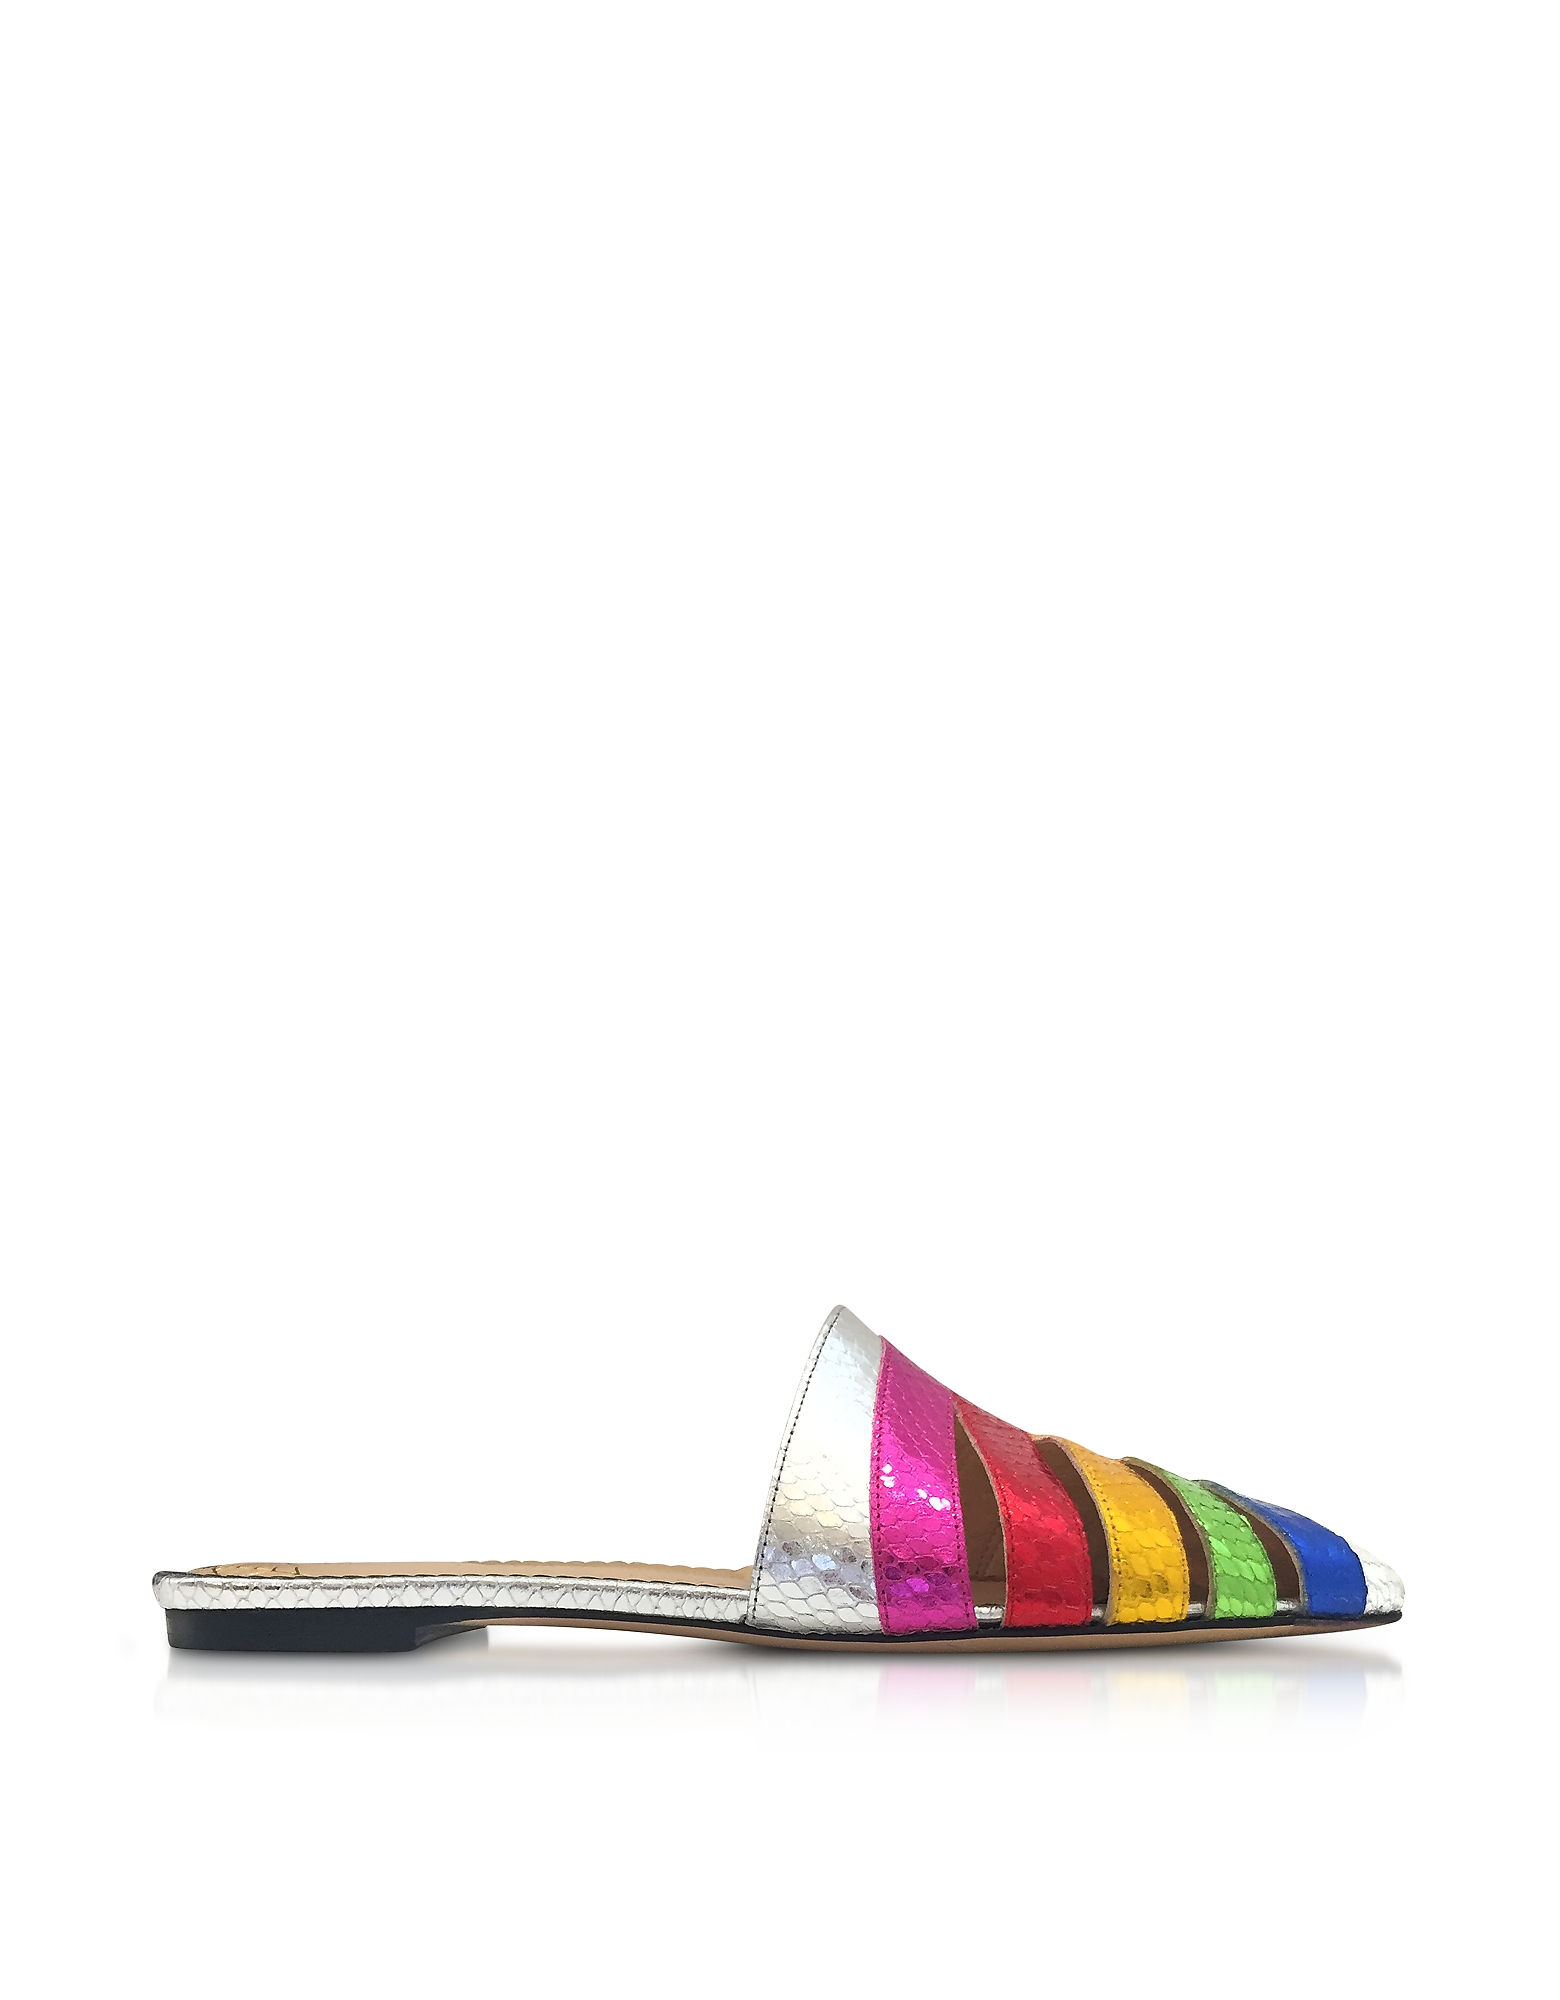 Charlotte Olympia Shoes, Metallic Snake-Print Leather Technicolor Slides